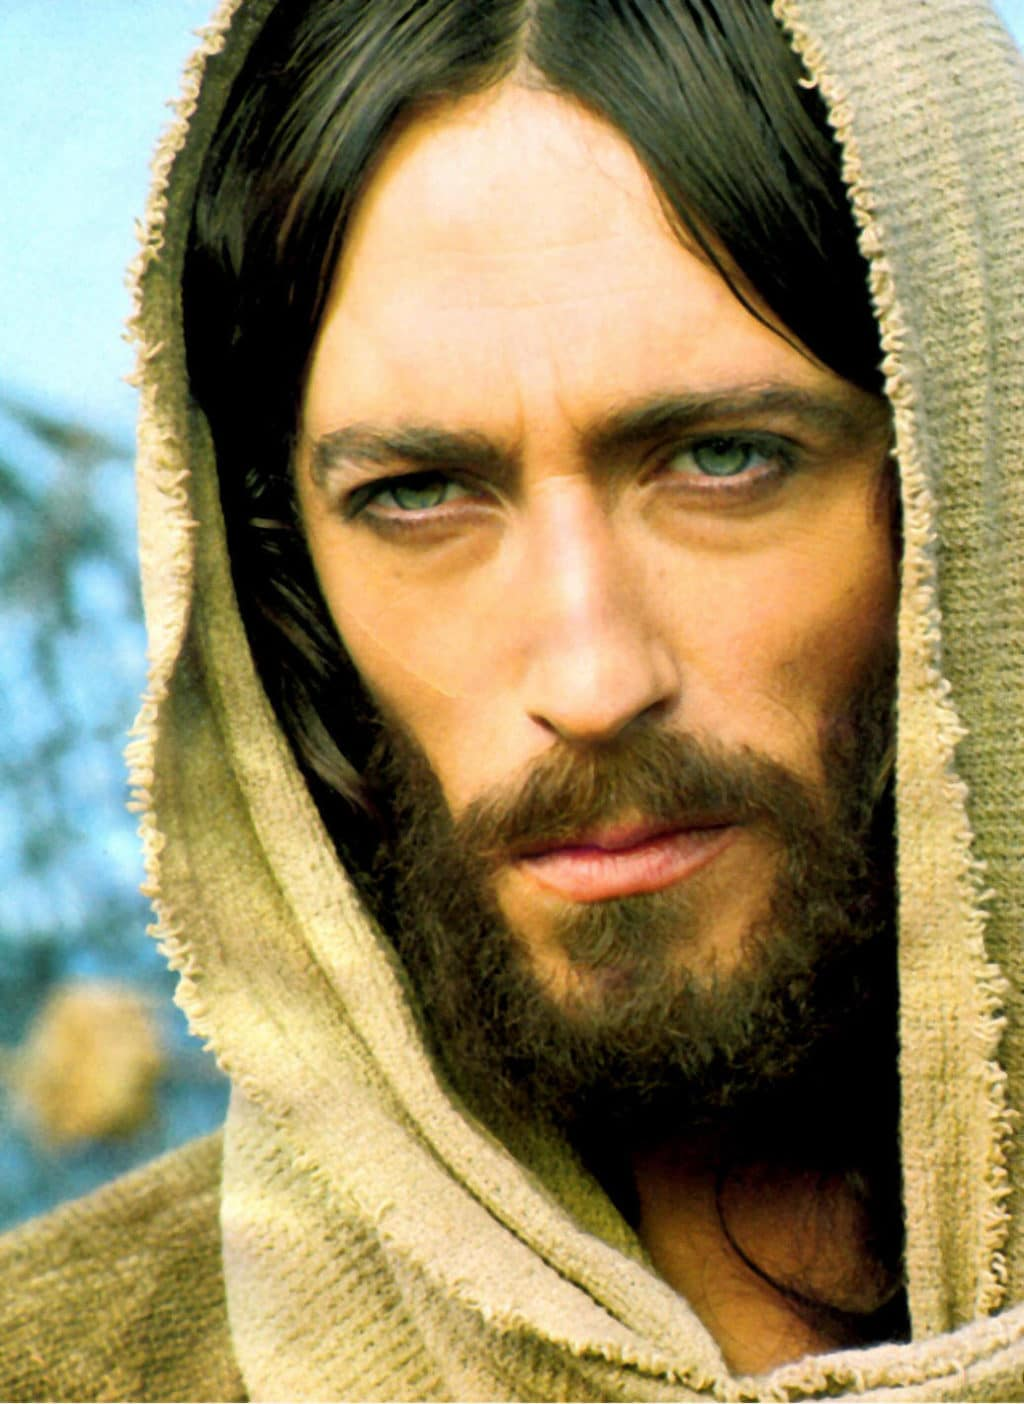 jesus christ 2 essay Free essay: joshua norman theo_201_d16_201330 short essay #2 short essay on the humanity and divinity of jesus christ the discussion regarding the humanity.